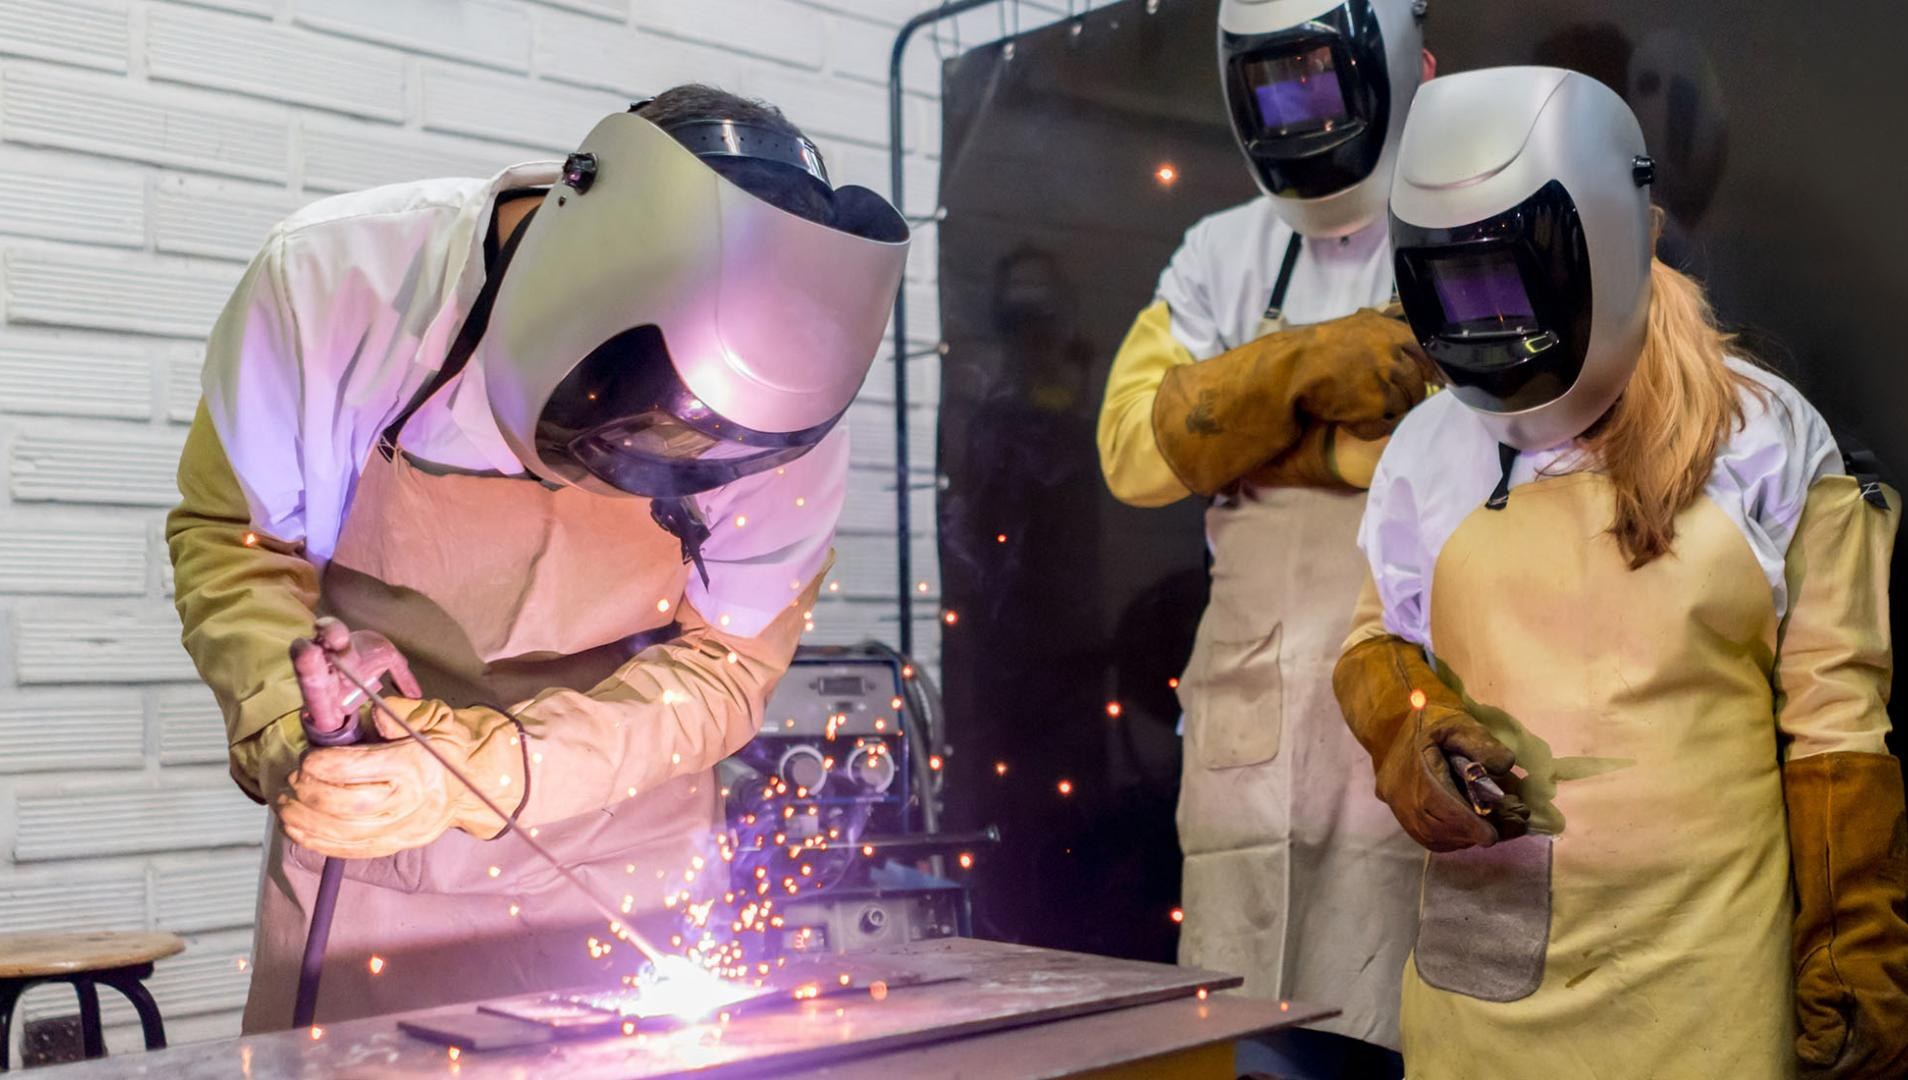 welding students in a classroom